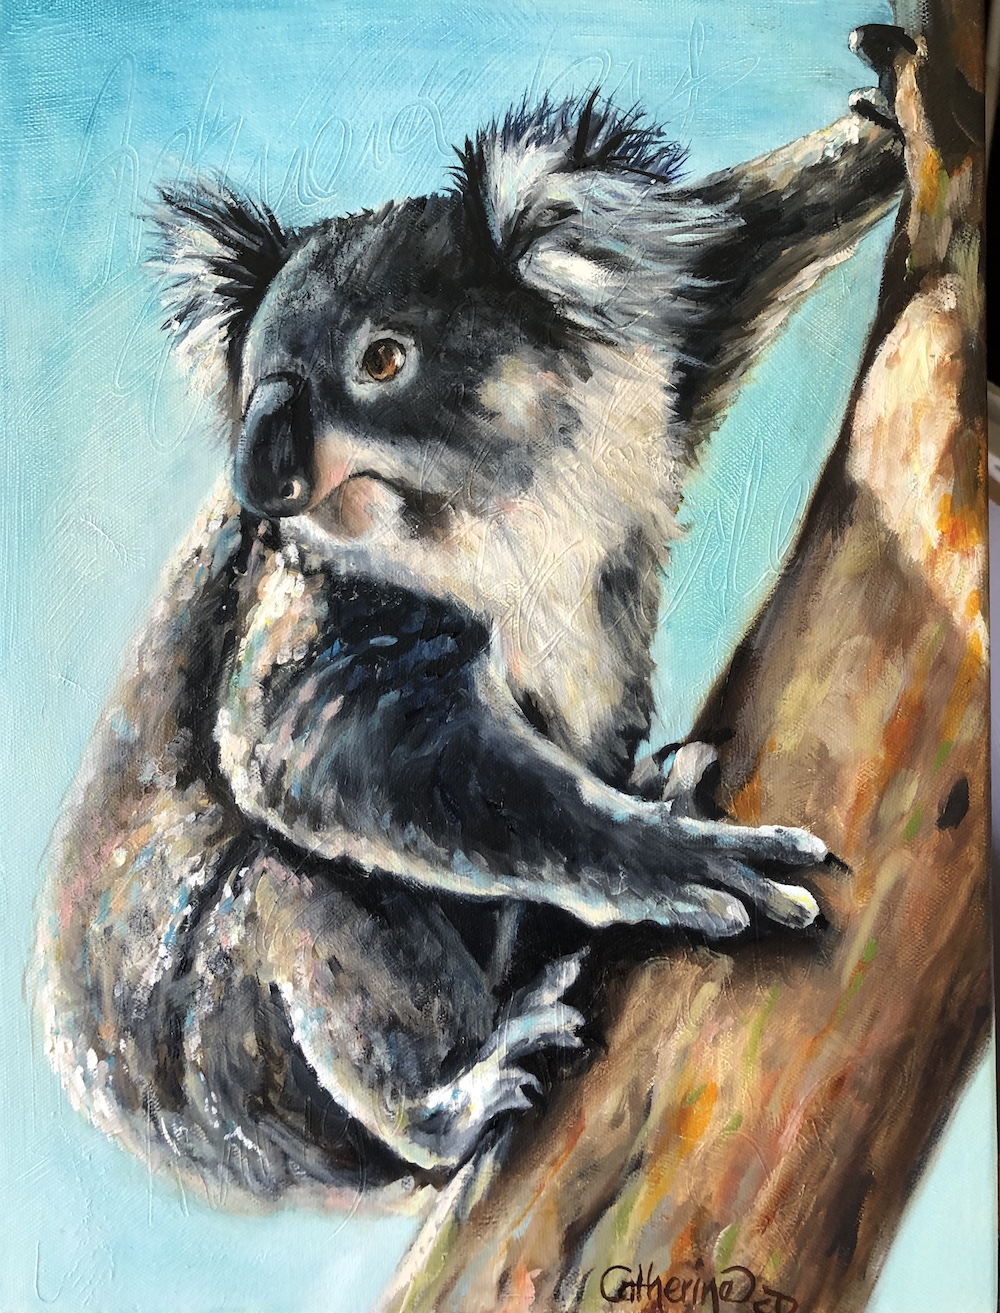 Living with Koalas artist Catherine Clark Dowden